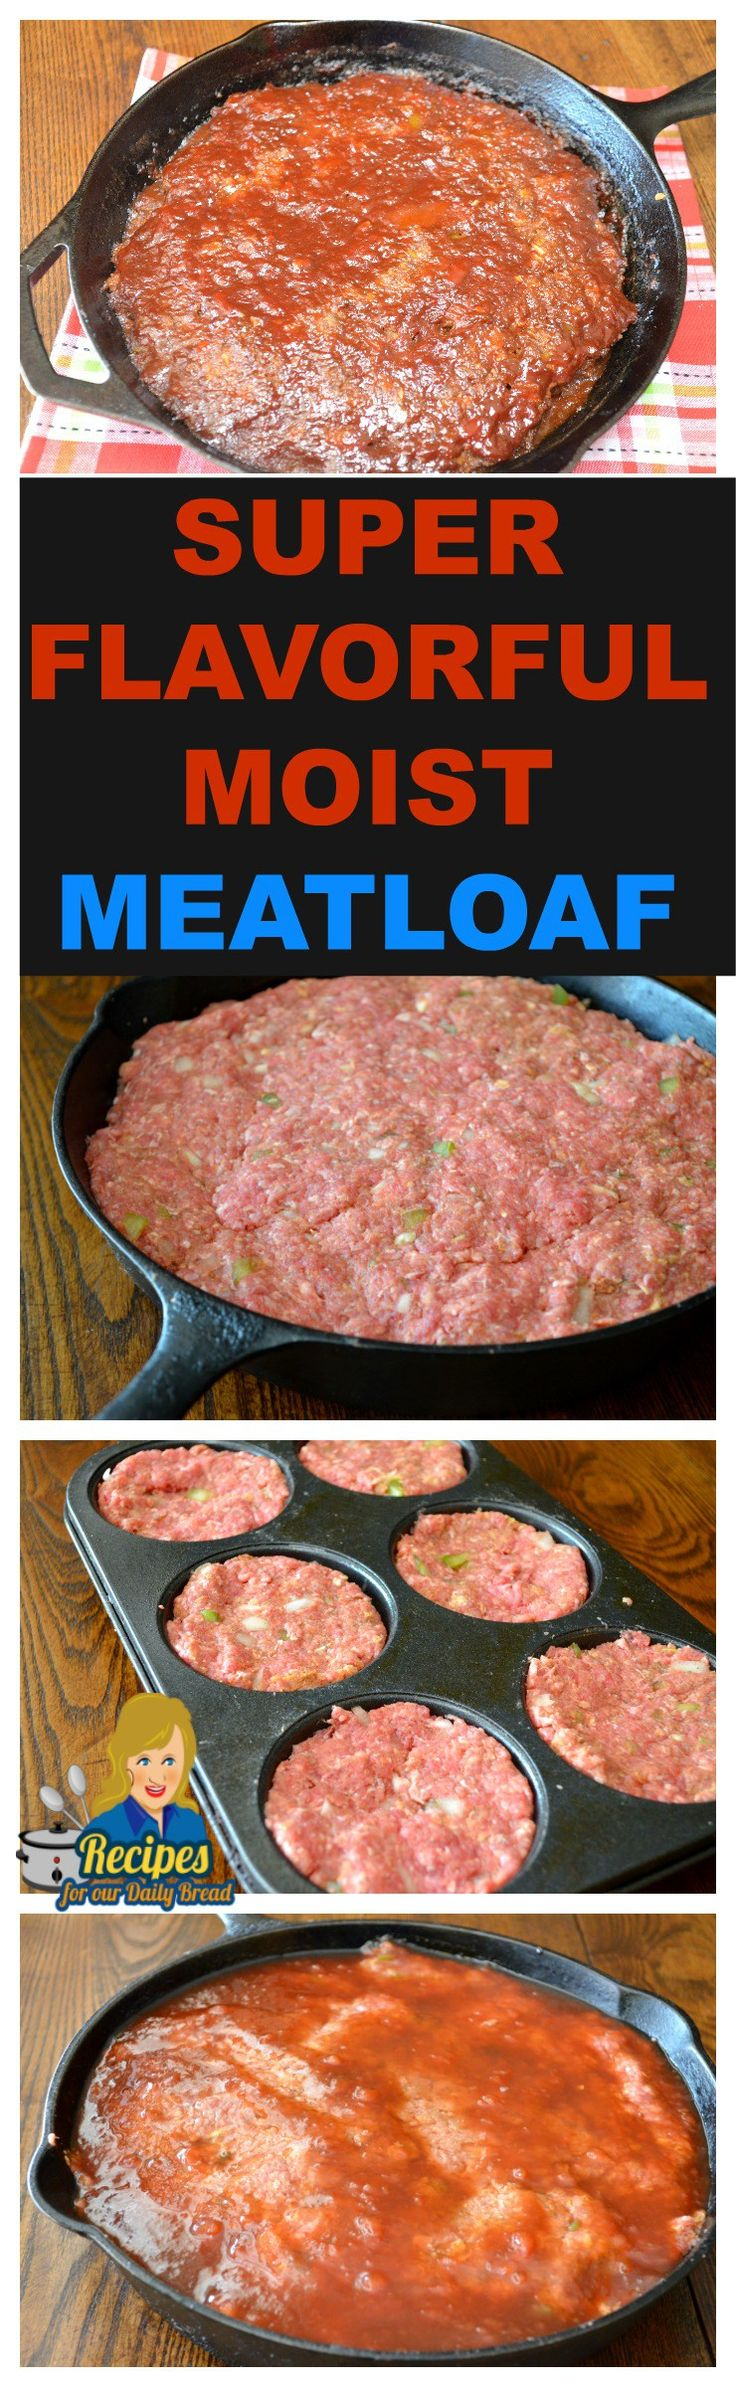 HOW TO MAKE SUPER FLAVORFUL MOIST MEATLOAF EVERY TIME  See Full Recipe Here: http://recipesforourdailybread.com/super-moist-meatloaf-recipe/